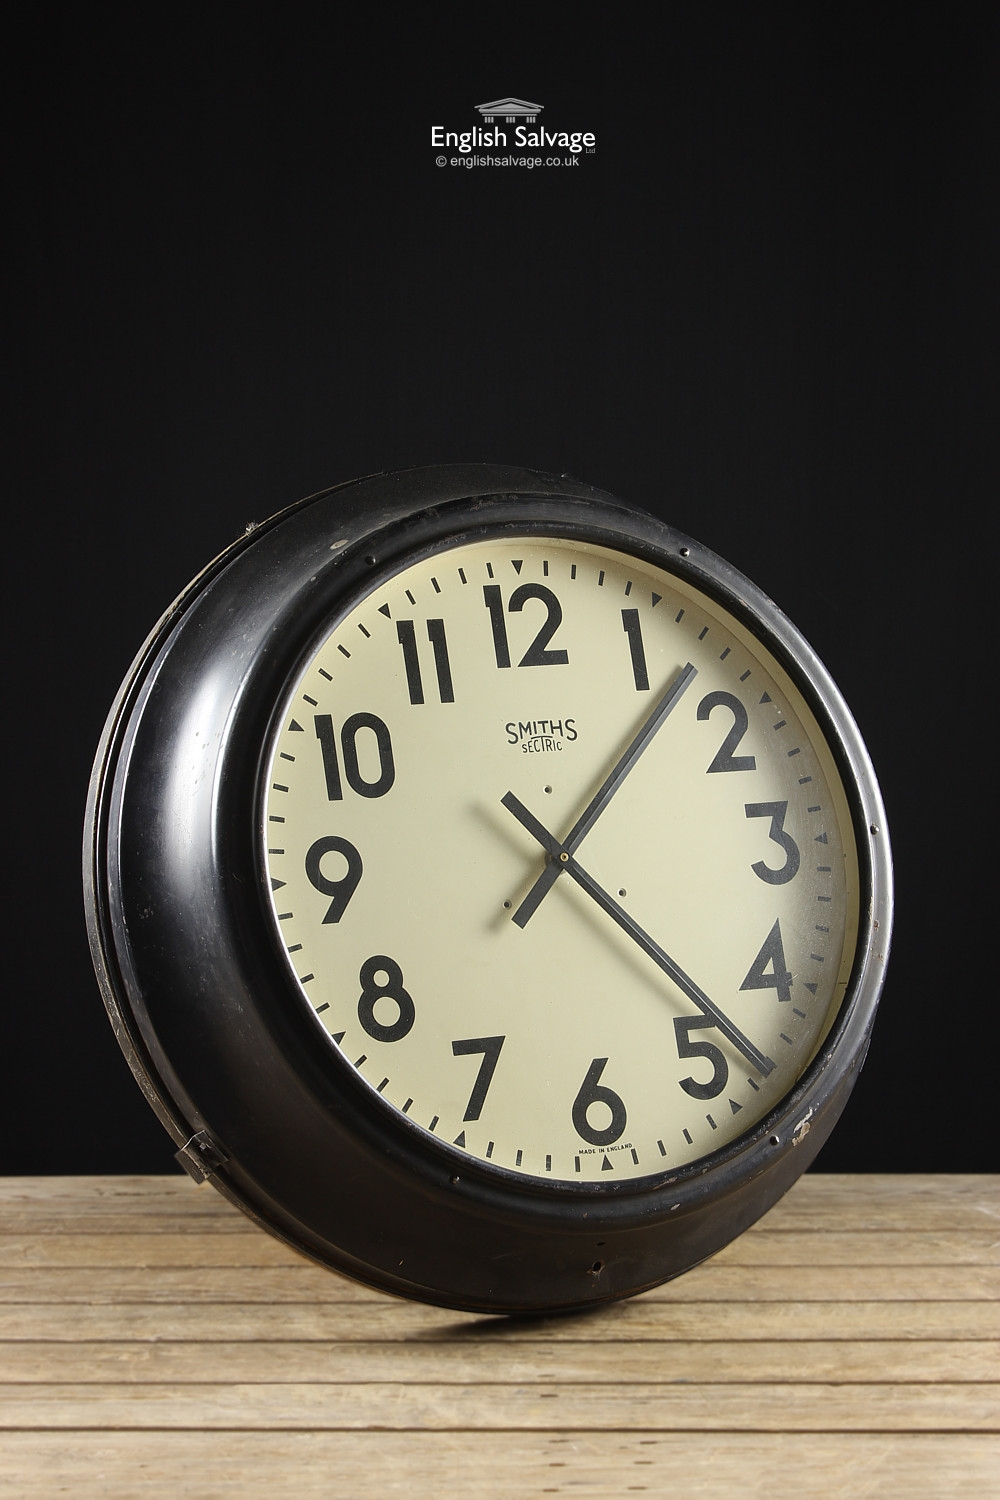 Vintage Industrial Clock By Smiths Sectric